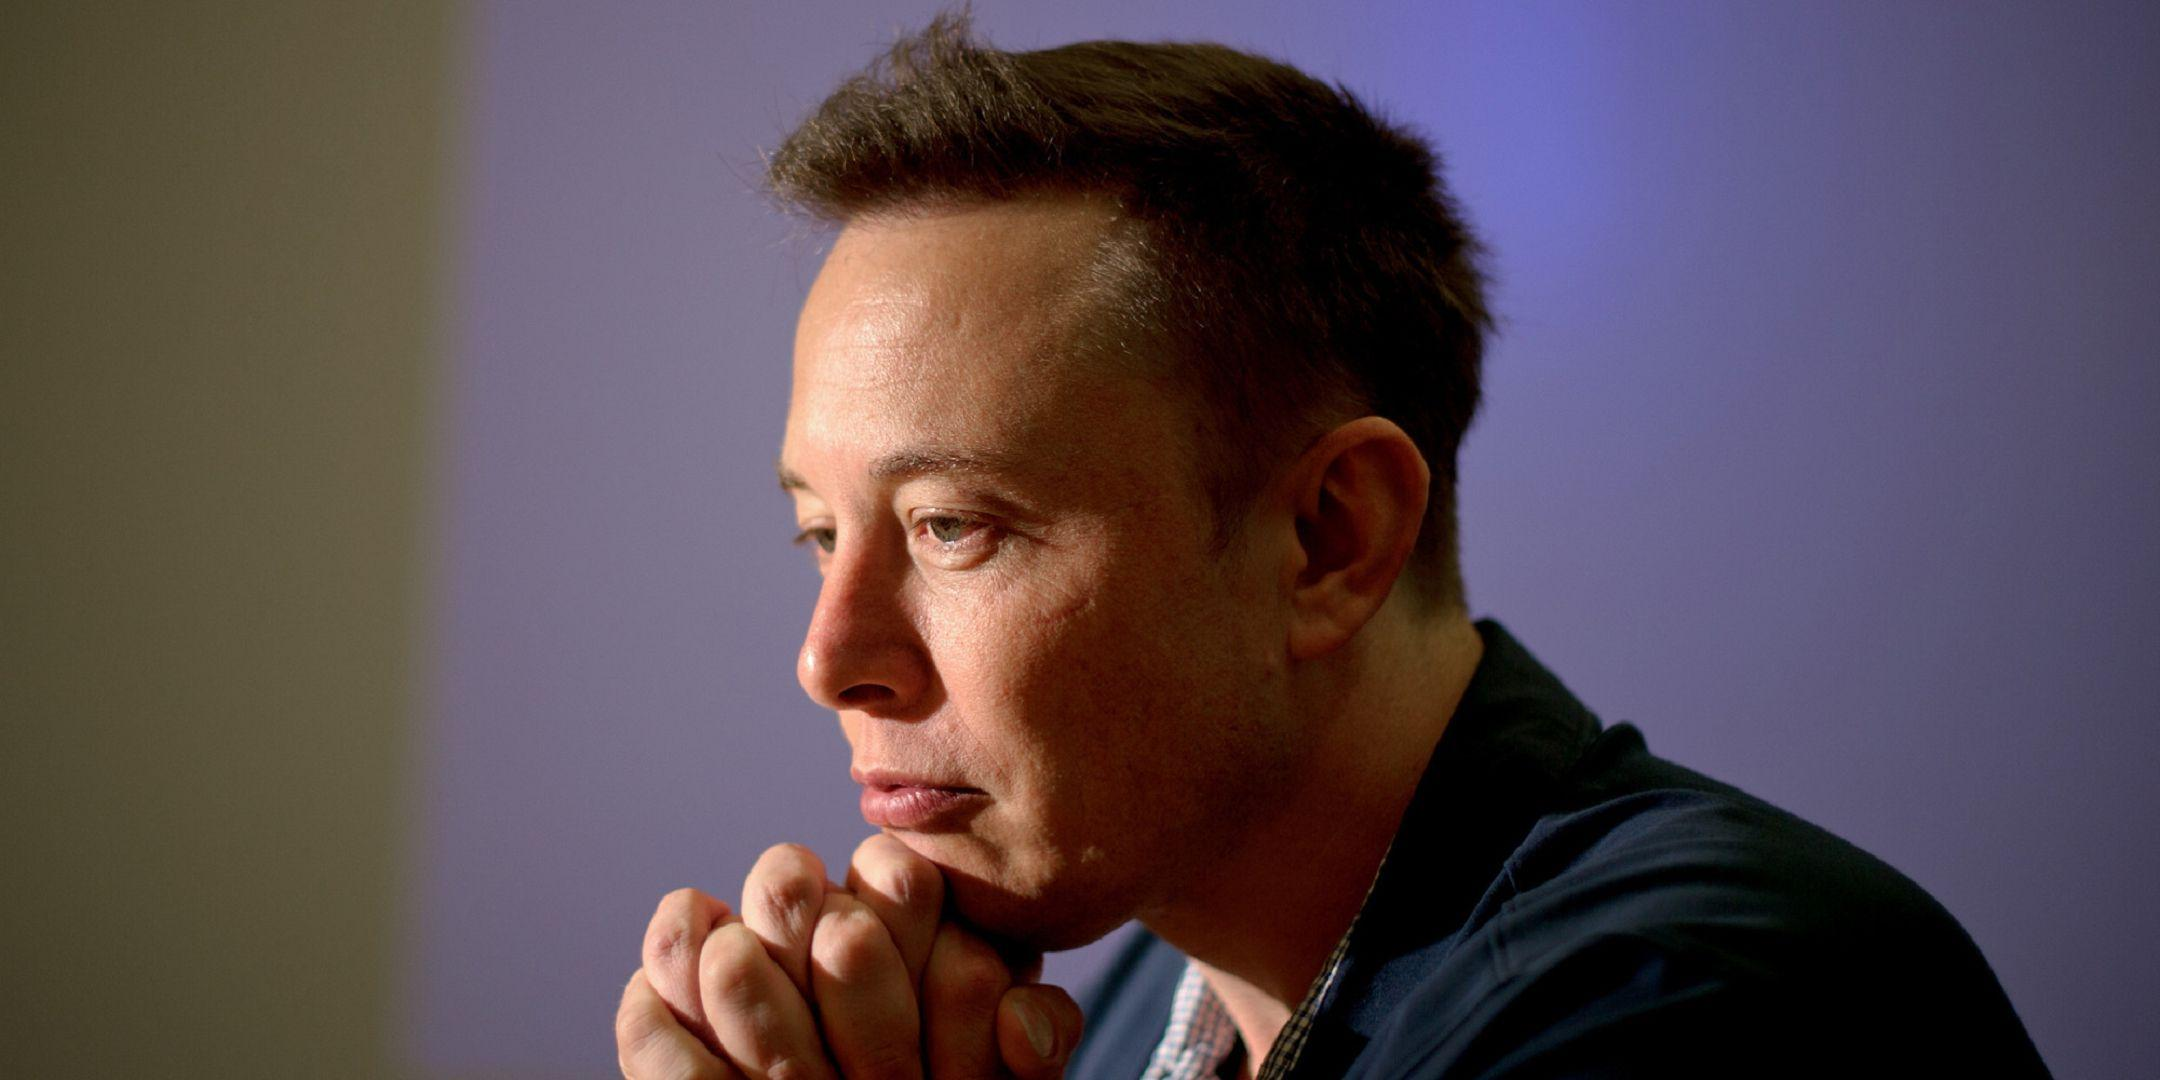 Elon Musk Wallpapers Image Photos Pictures Backgrounds